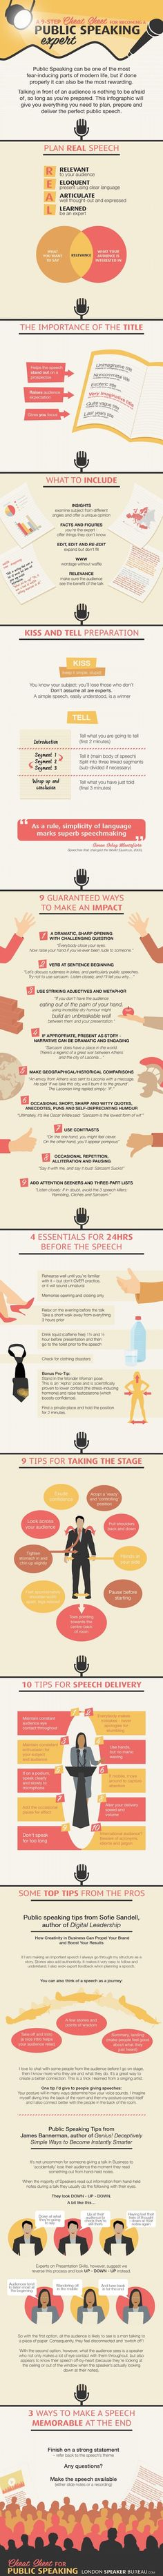 Career Management - Nine Steps for Public Speaking Like a Pro [Infographic] : MarketingProfs Article